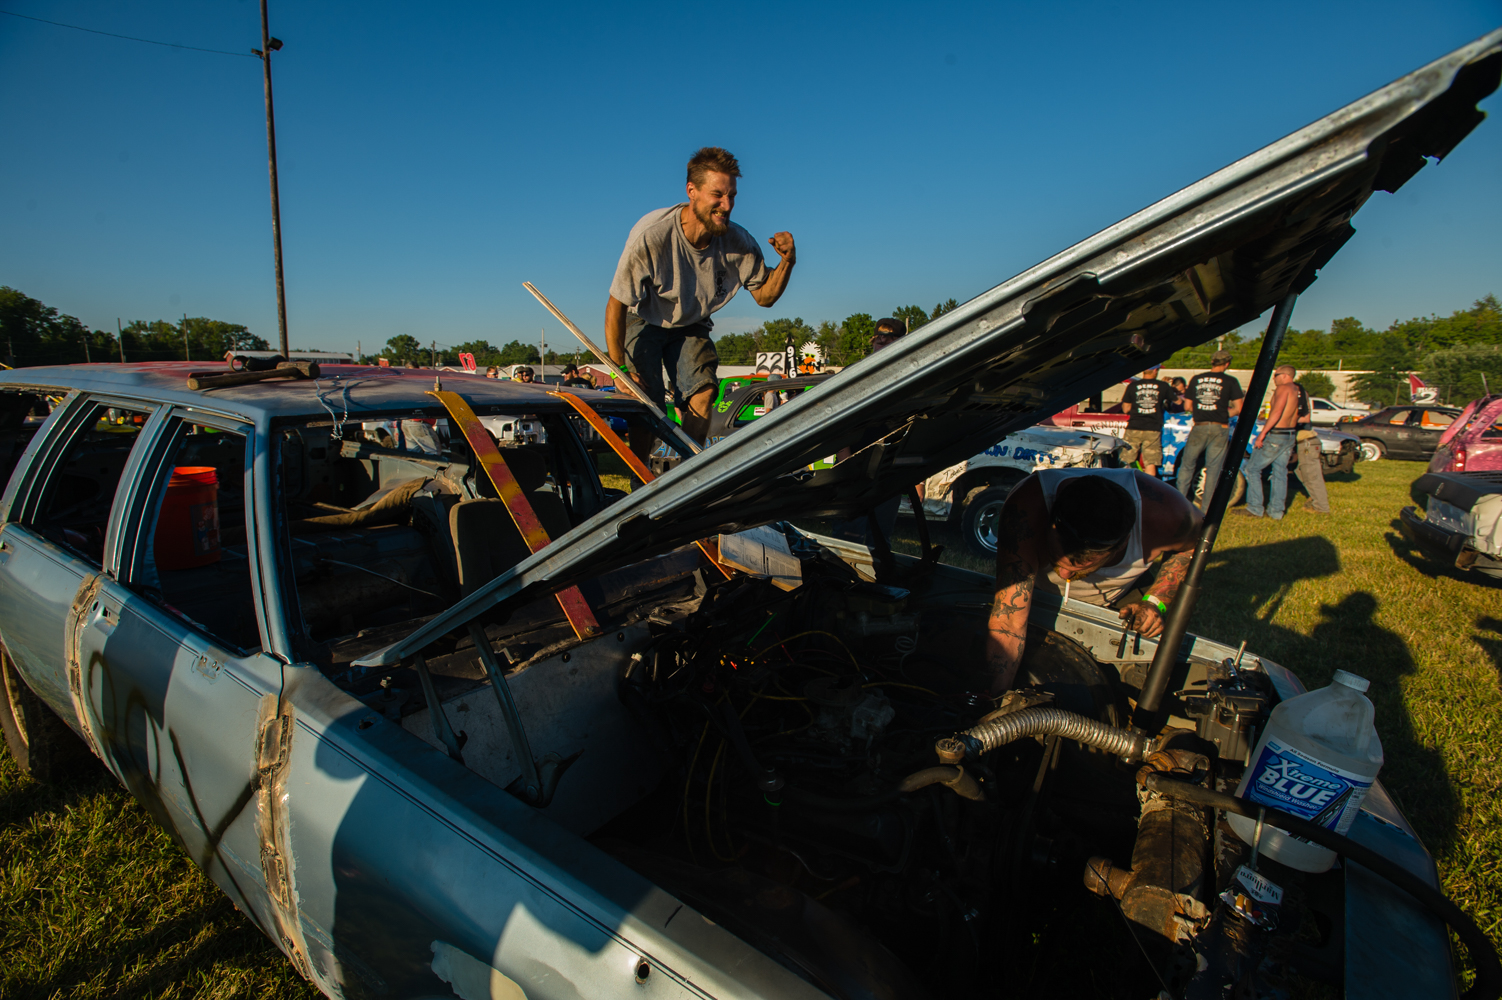 After nearly twelve straight hours of repair to get the car prepped before race time in Ohio, Jason Brasly reacts to a successful ignition by his boss, Kurt Meister. The vehicle had been donated by Brasly's girl friend, whom was looking to get rid of three vehicles.